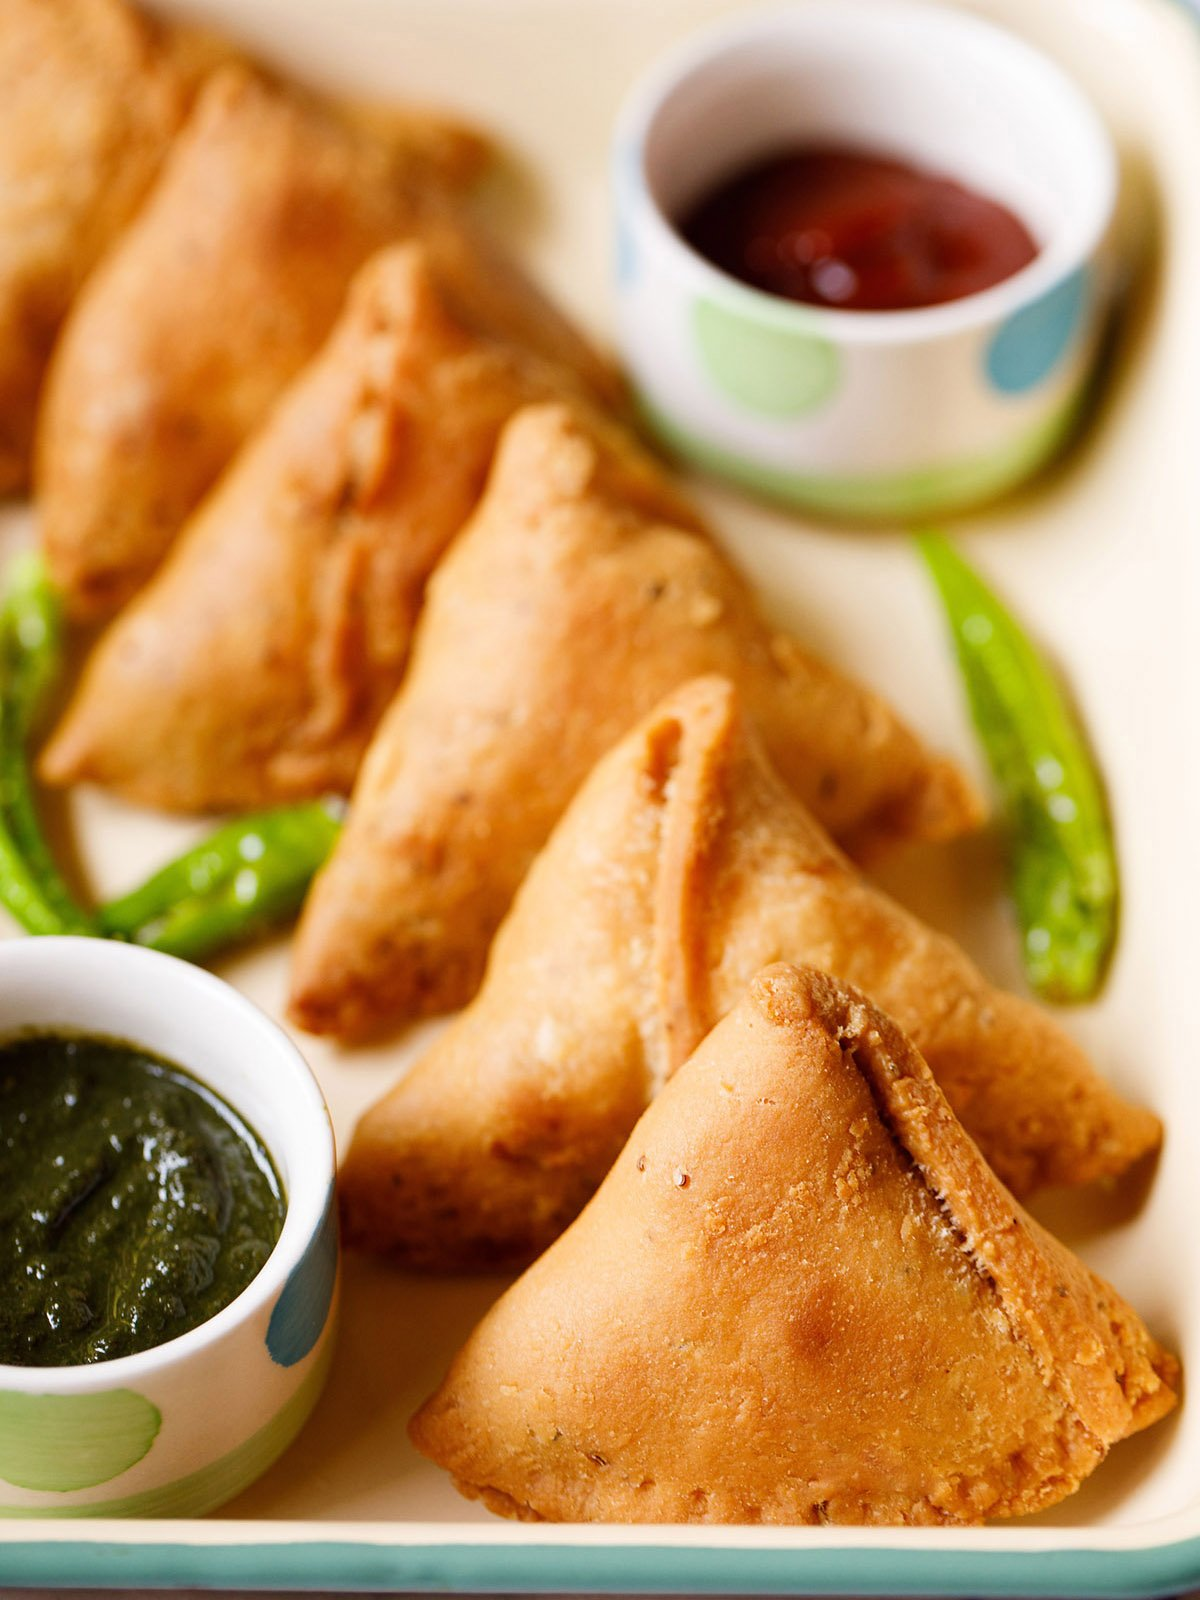 samosa stacked neatly on a cream tray with small bowls of chutney and salted fried green chillies